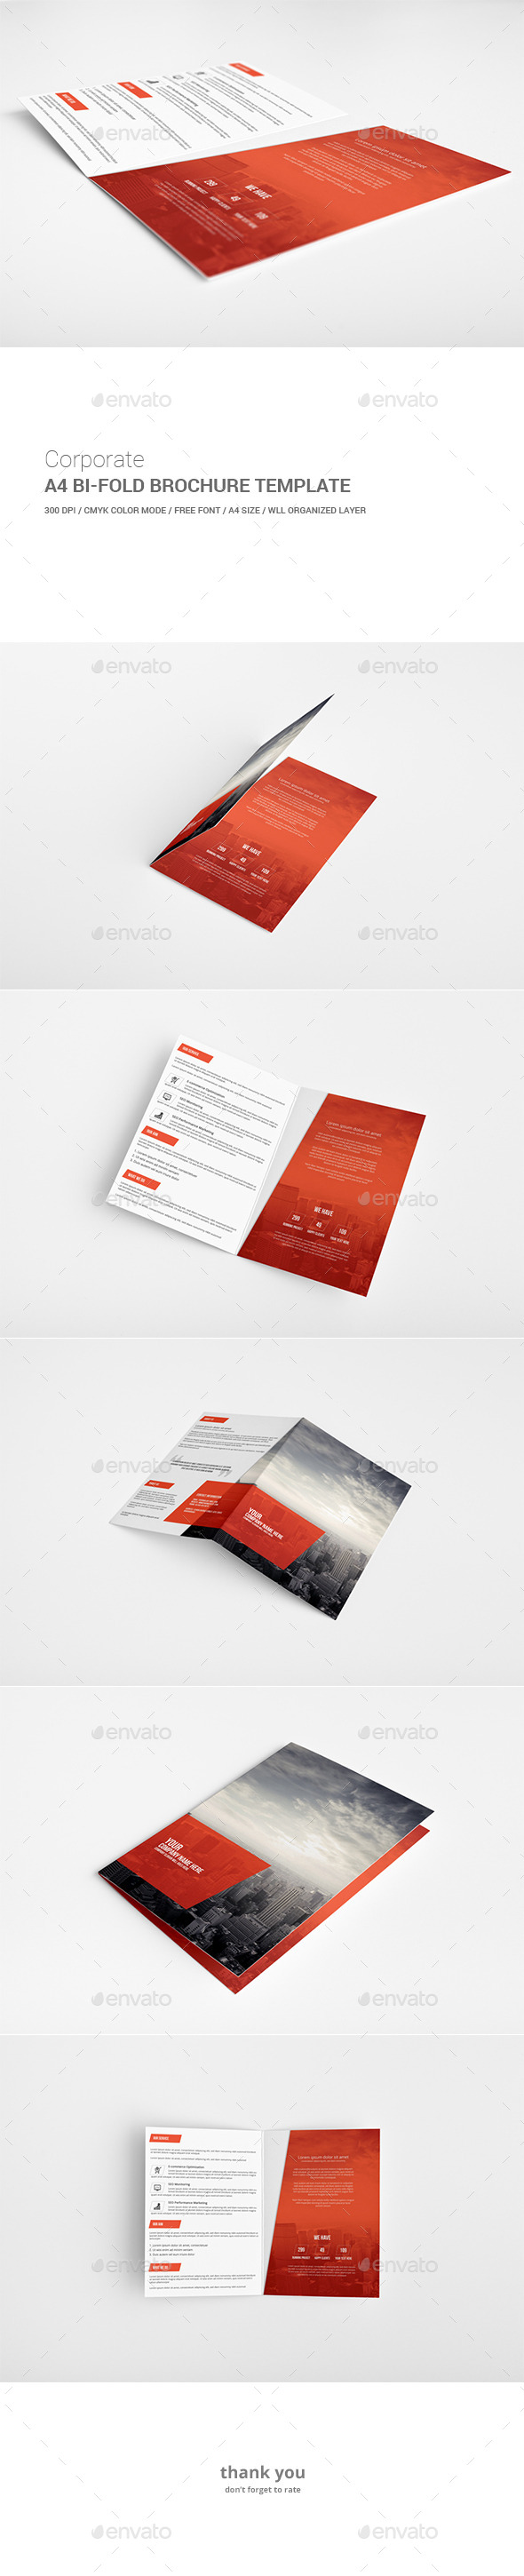 double fold brochure template - graphicriver corporate bi fold brochure template 11948467